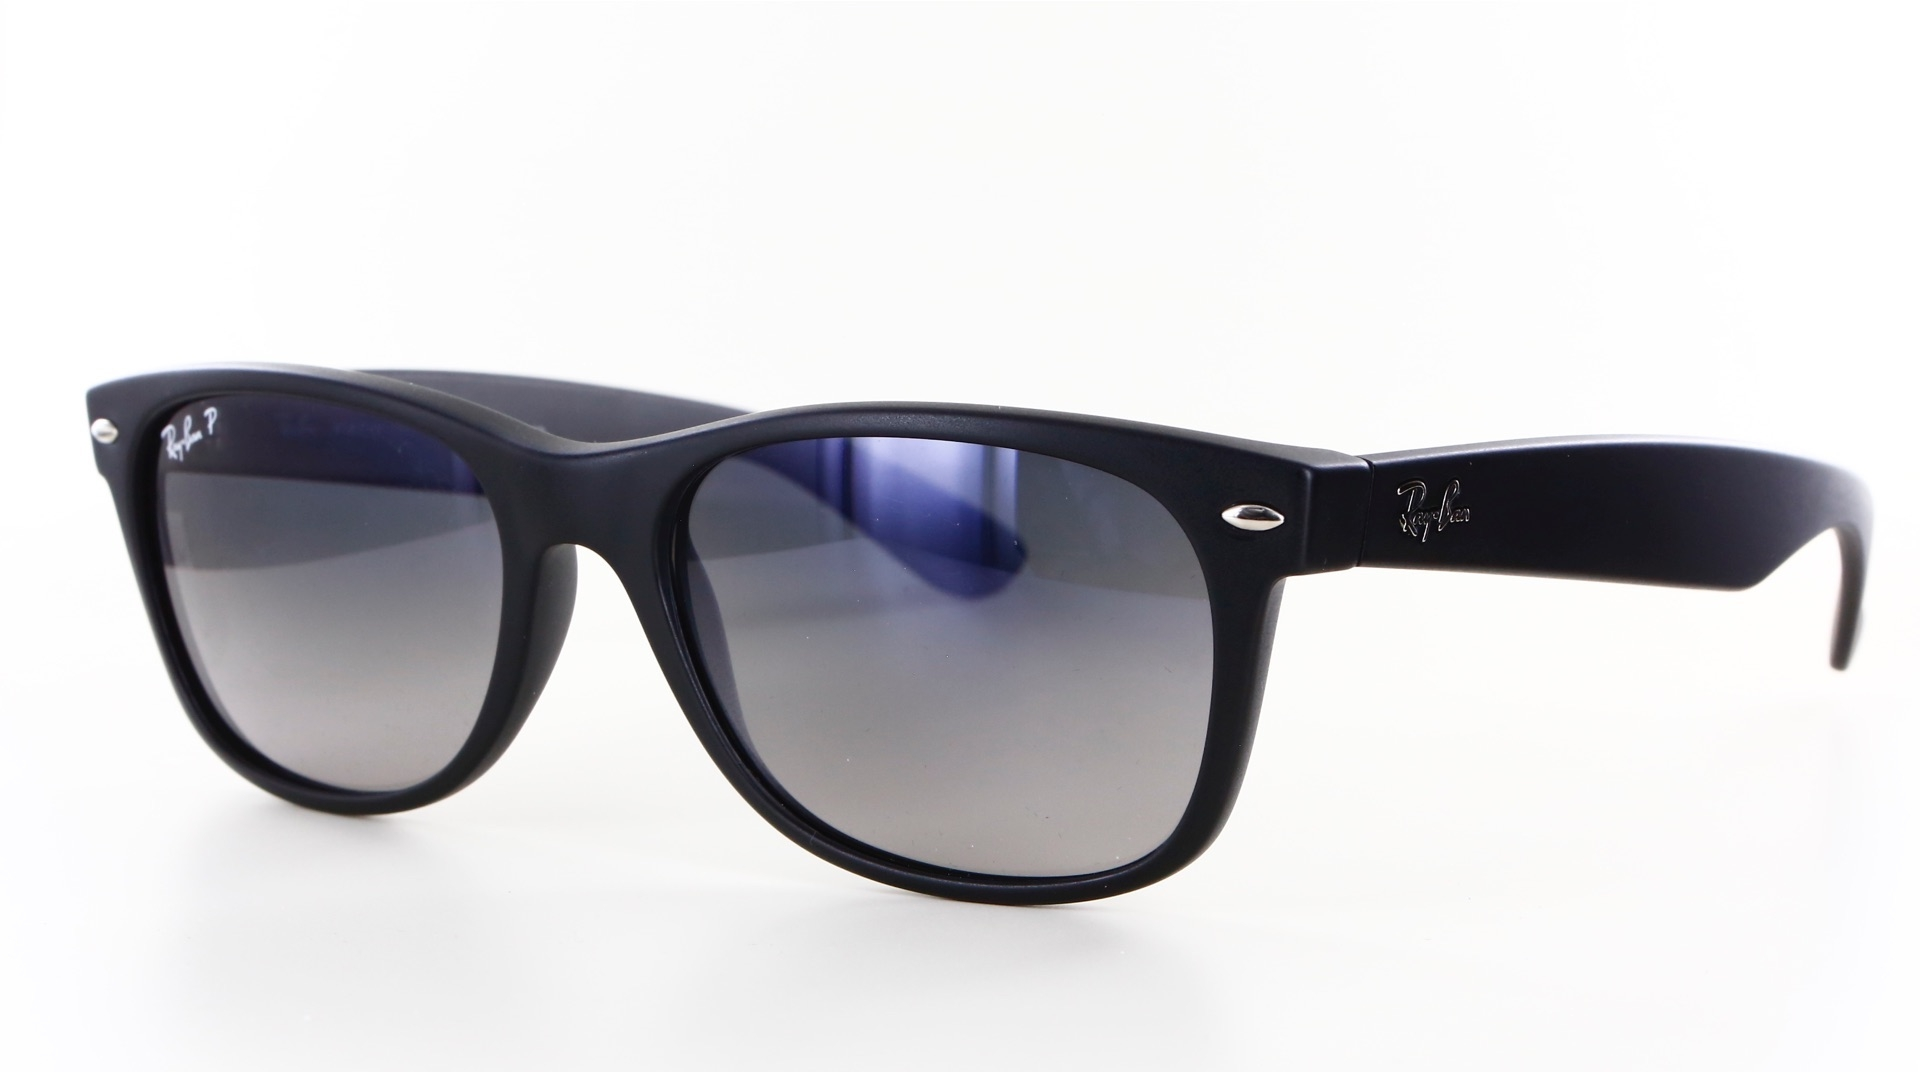 Ray-Ban - ref: 68394